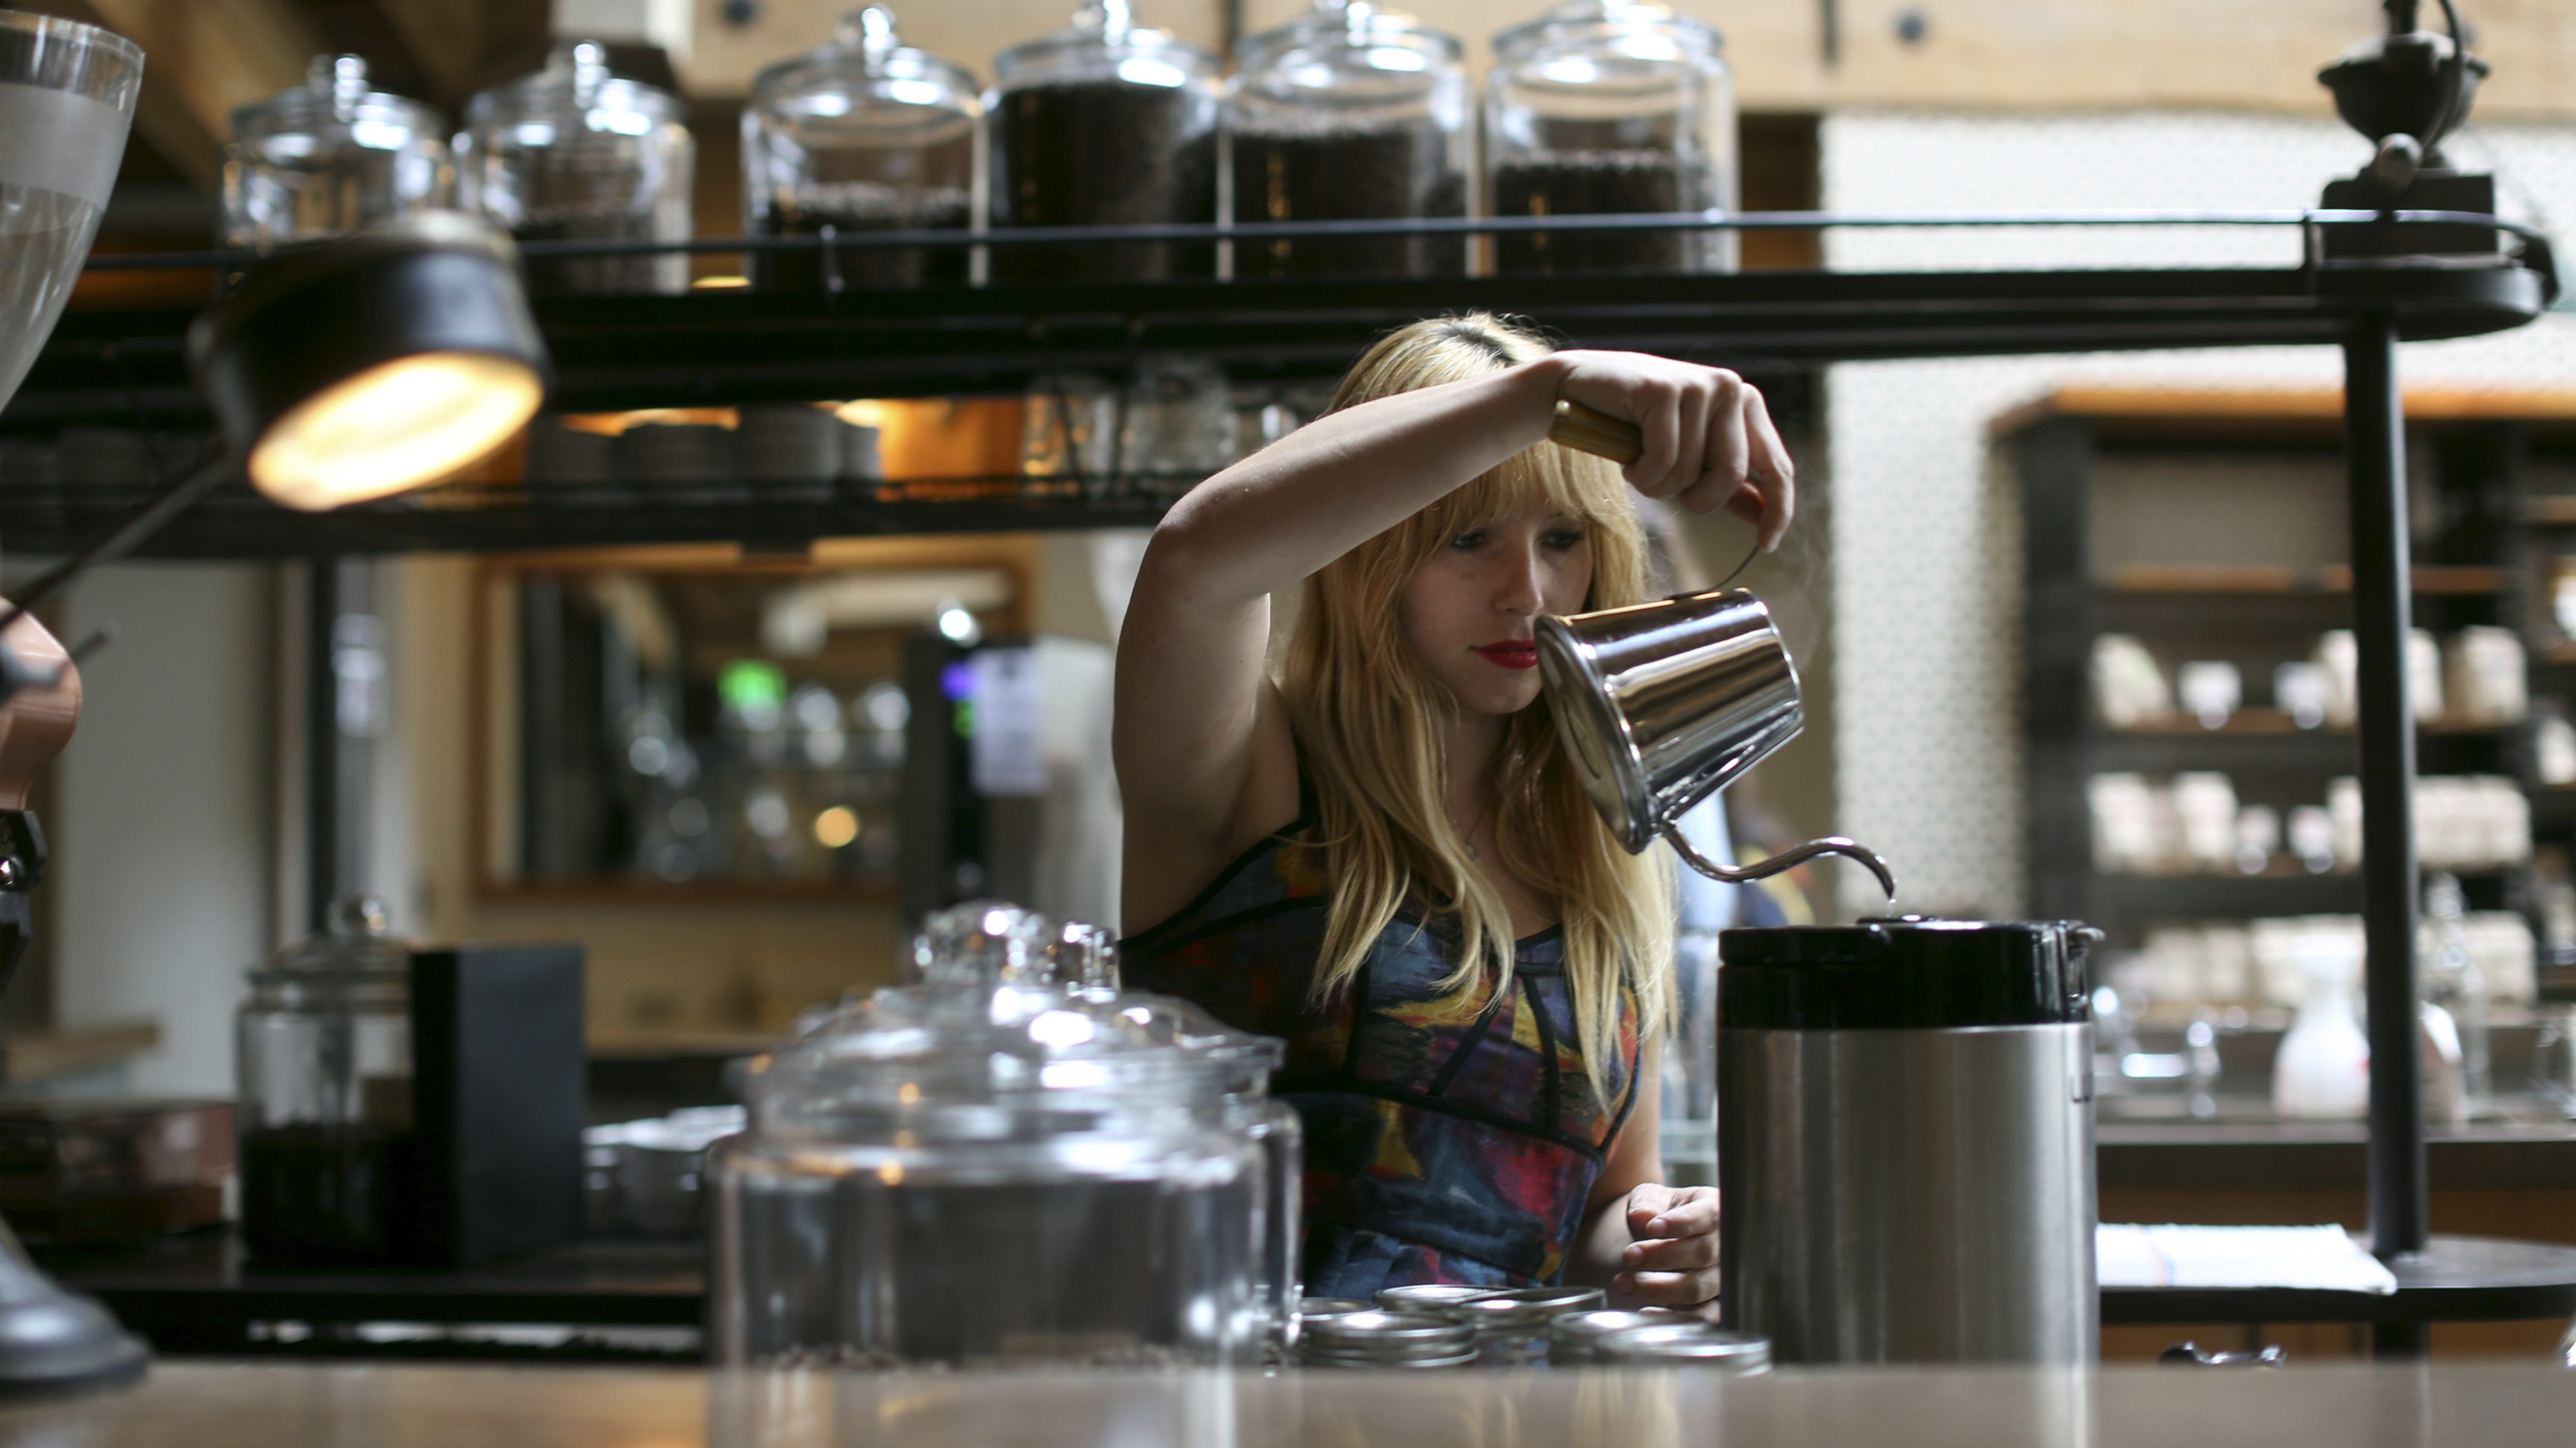 A barista prepares a coffee drink at Sightglass, a coffee bar and roastery, in San Francisco